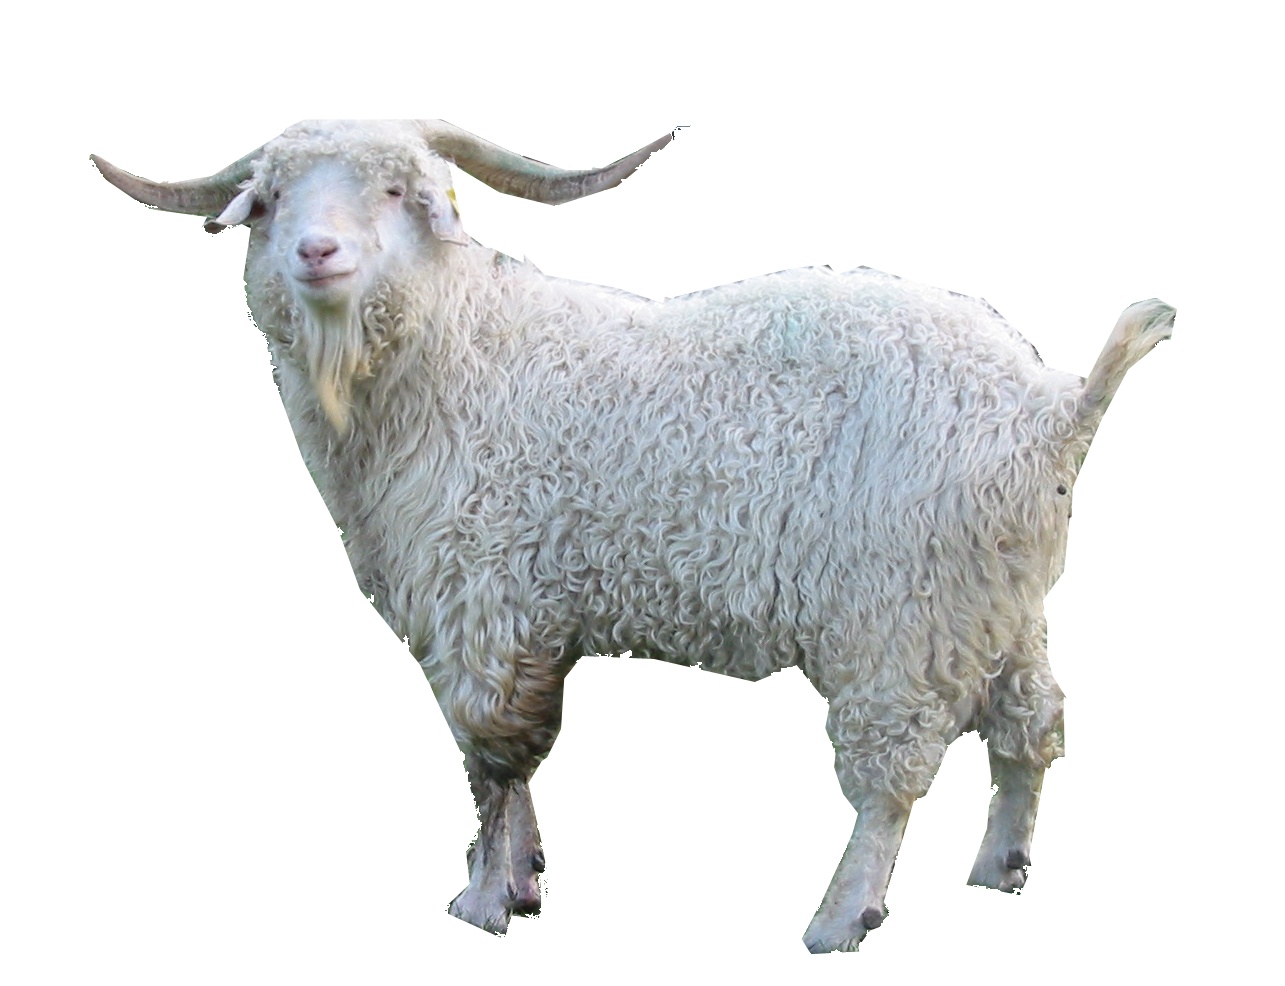 Goat .png. Related image school media